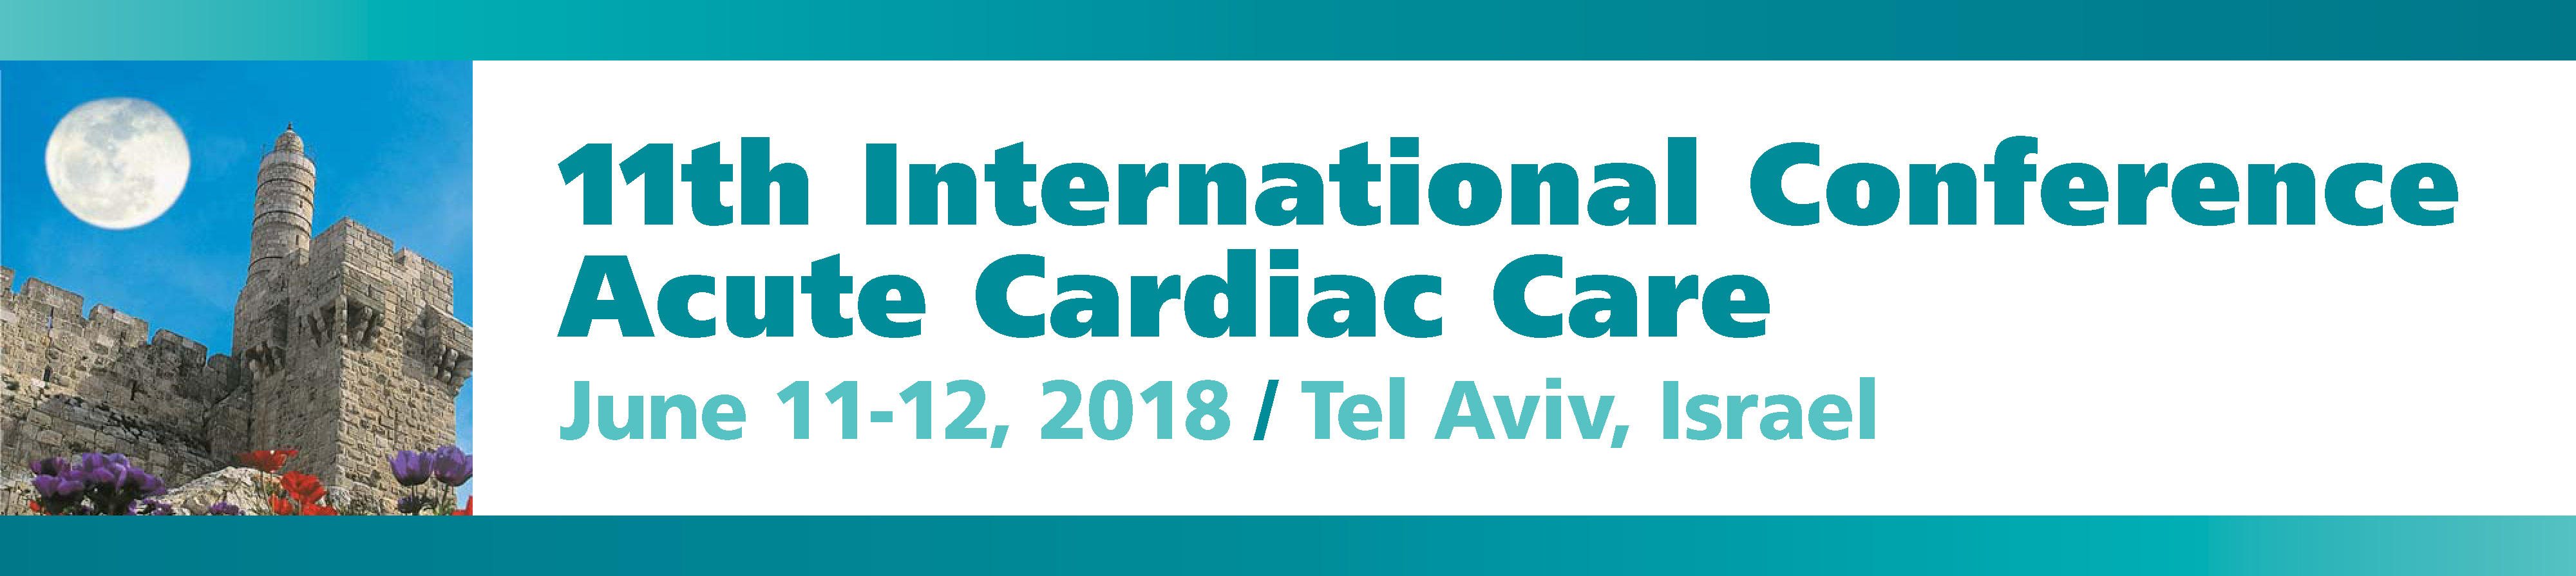 11th International Conference on Acute Cardiac Care – 2018